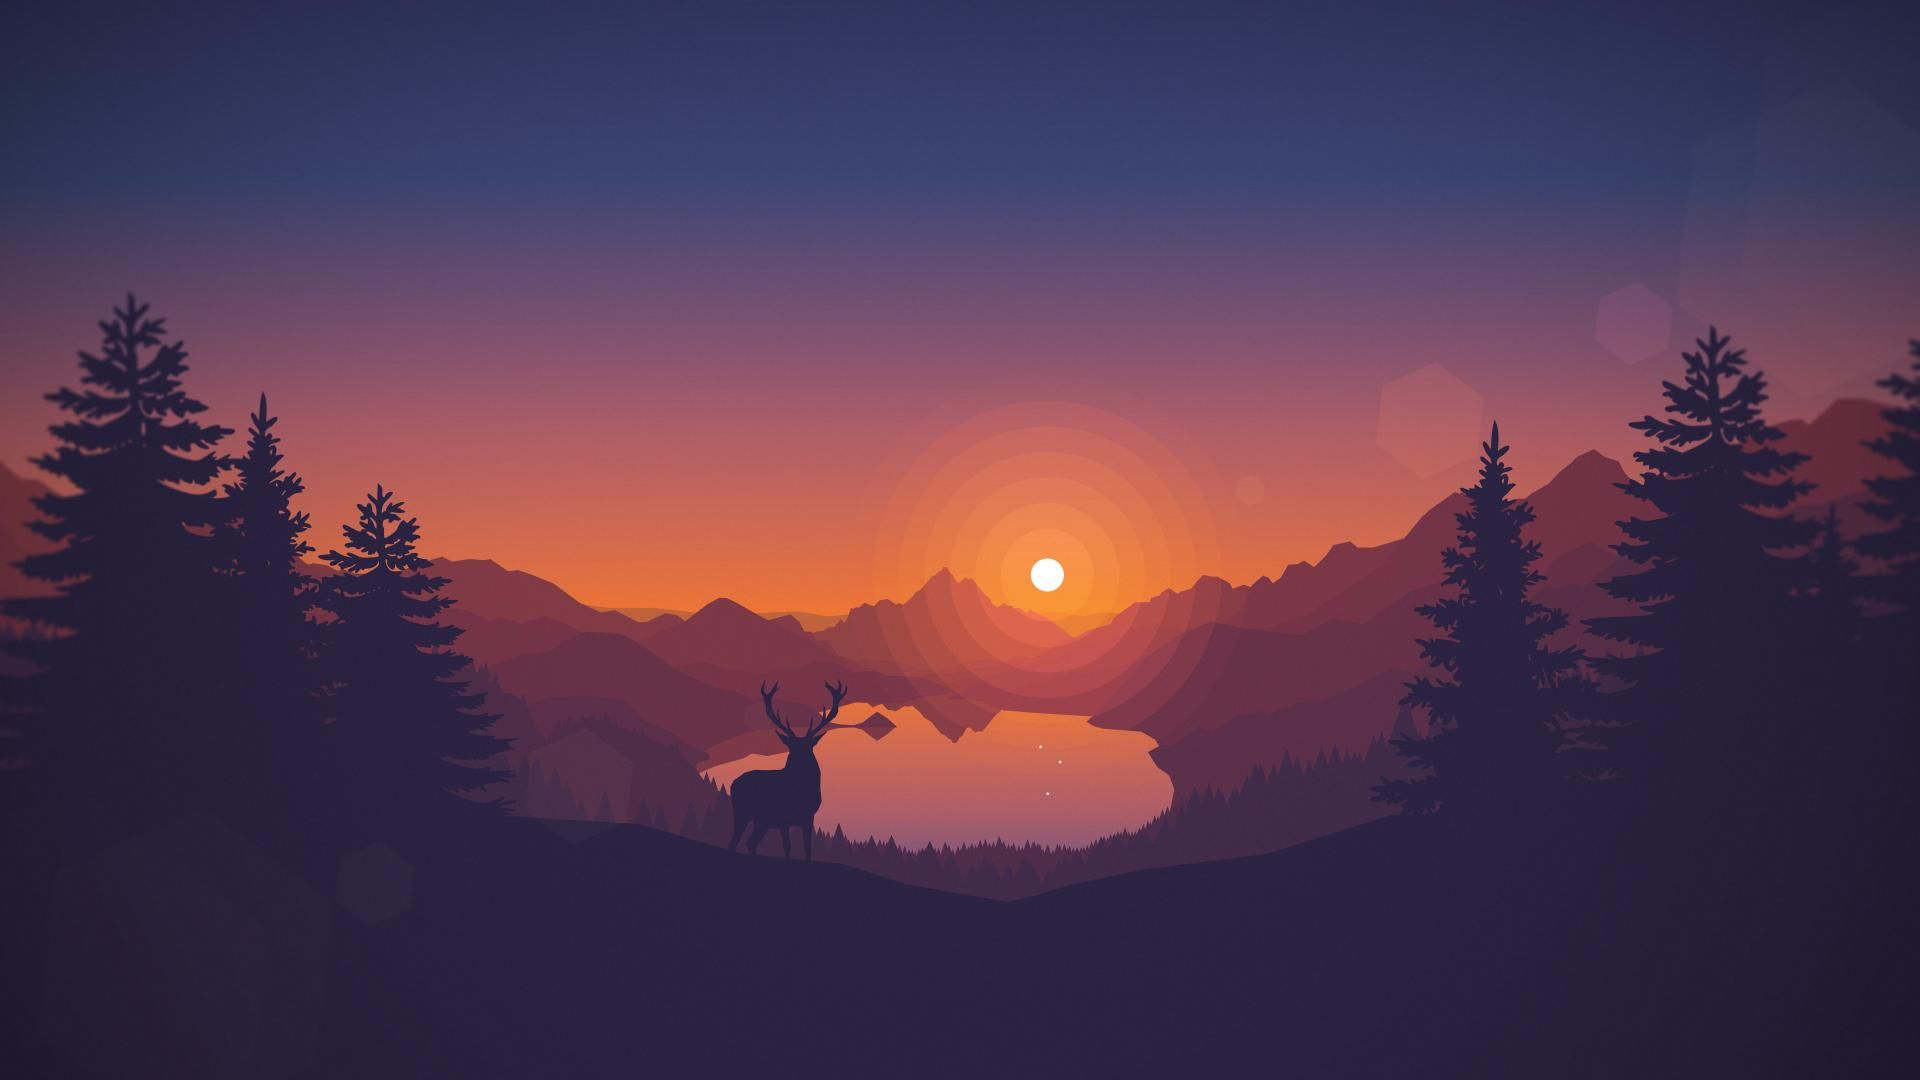 Dawn Landscape Wallpaper Sunset Wallpaper Minimalist Wallpaper